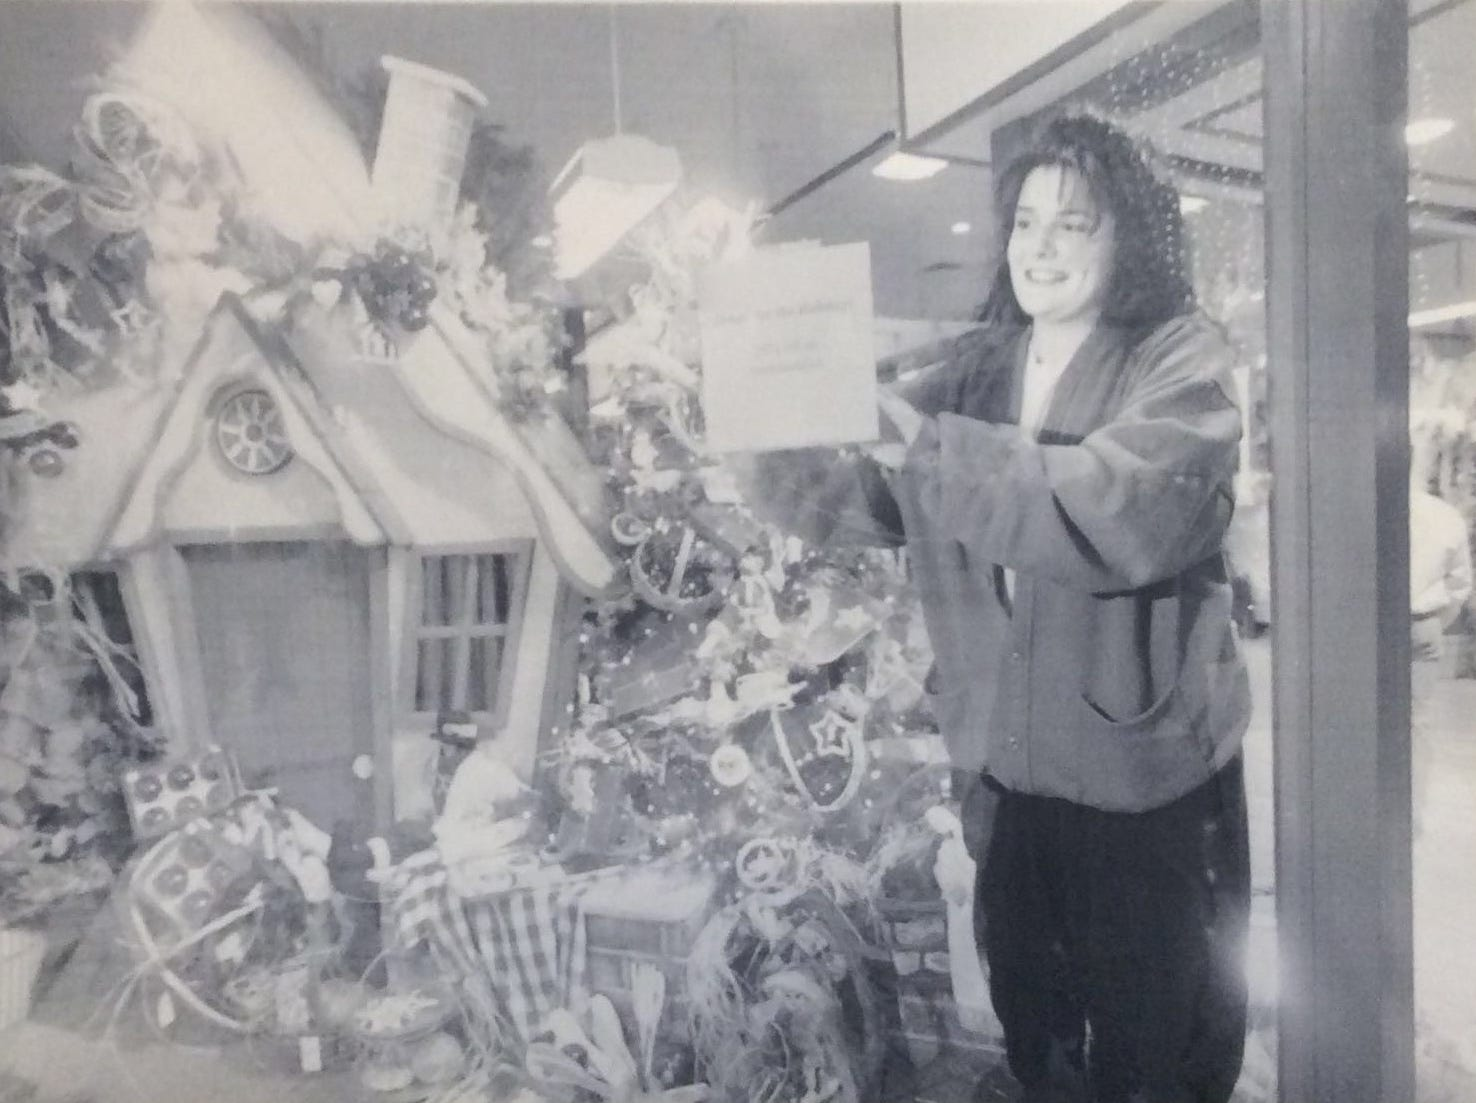 Gwen Lawson, manager of the Lansing Mall store Home for the Holidays, displays a sale sign announcing 25% off all merchandise, December 1994.